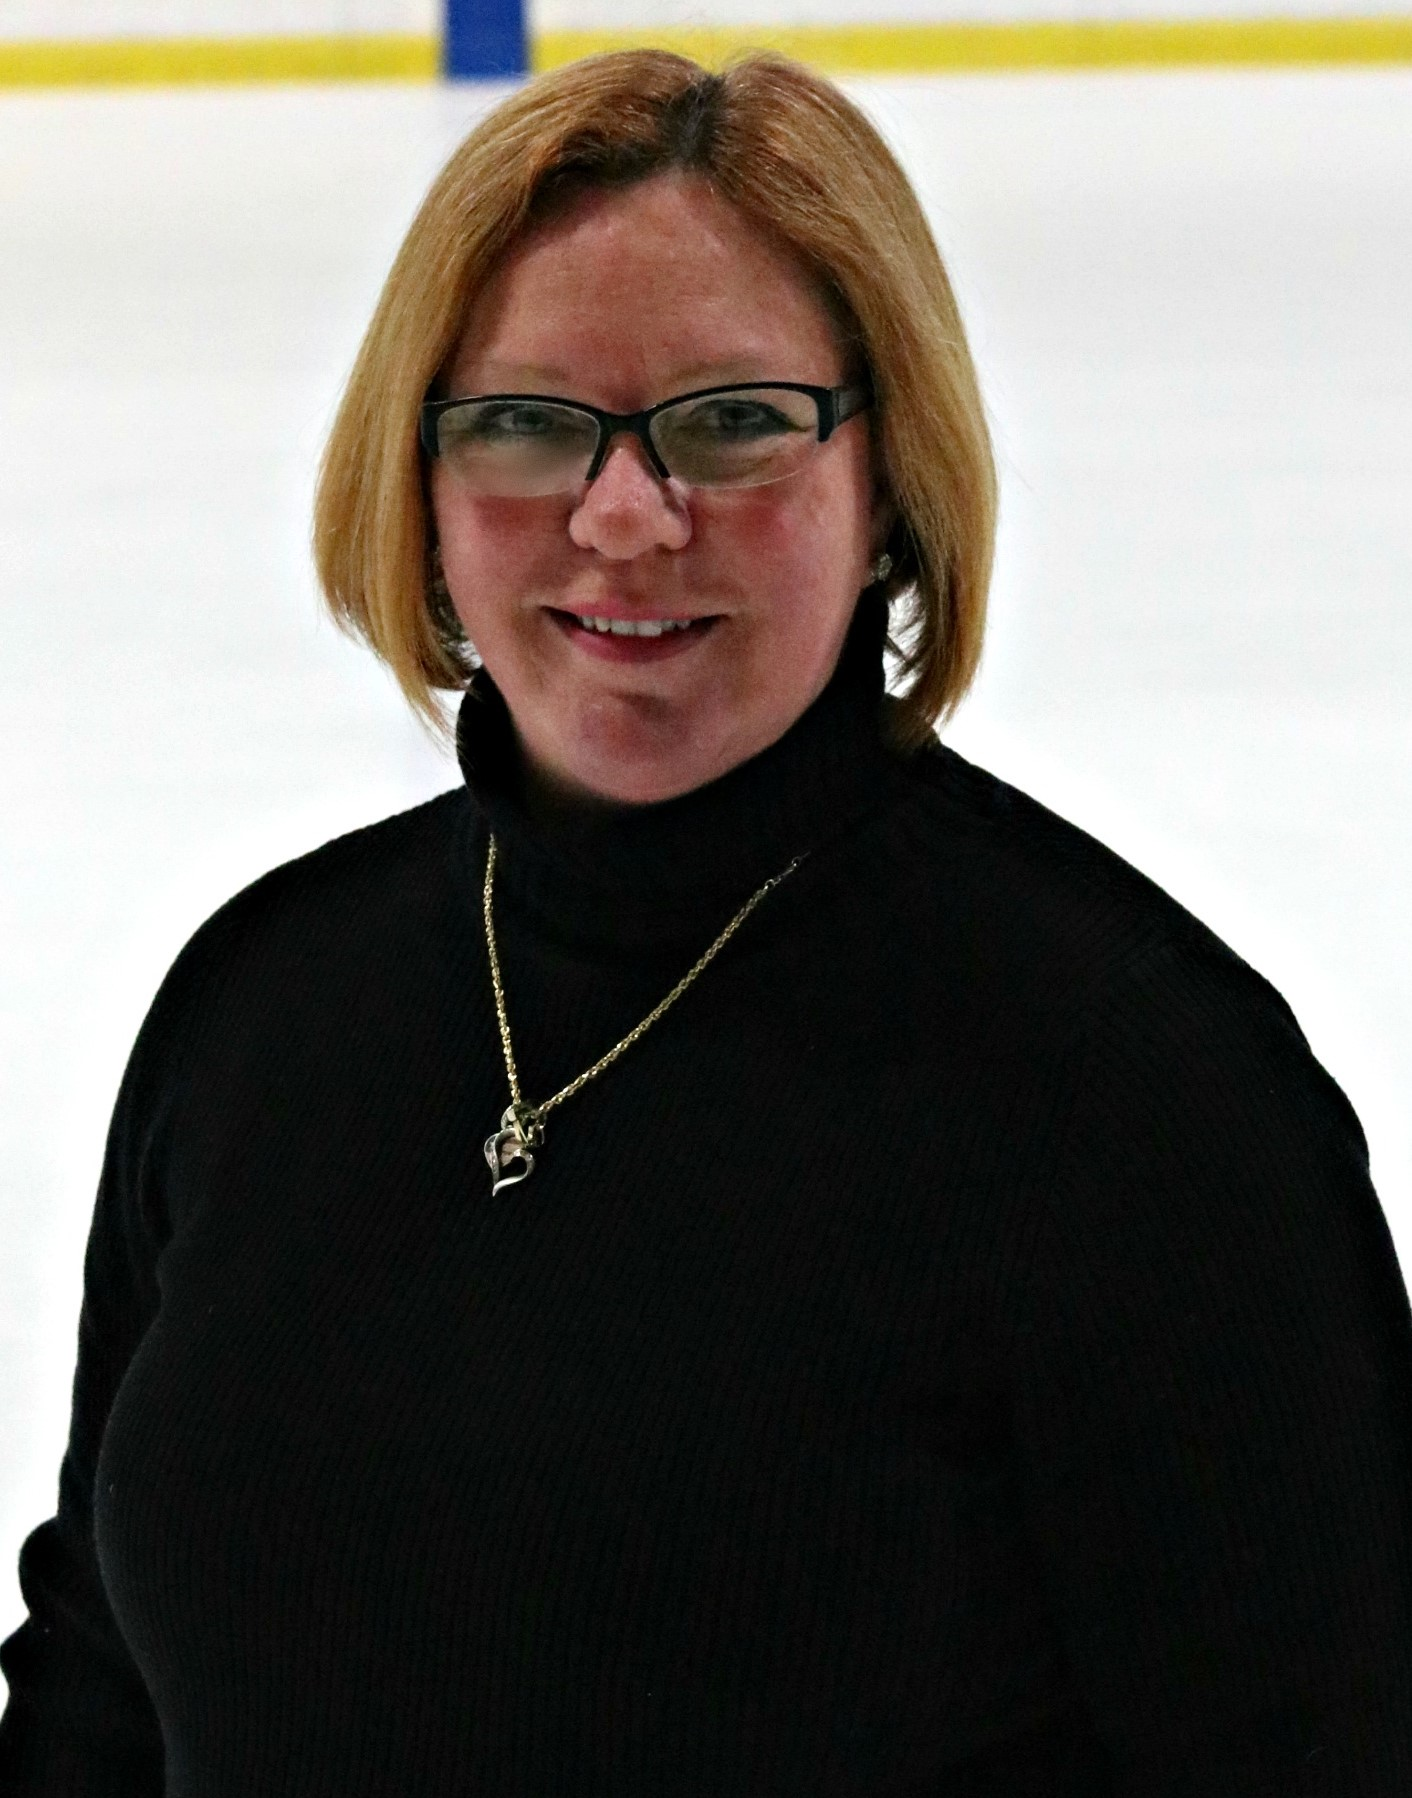 Extreme Ice Center Figure Skating Coach Tappie Dellinger